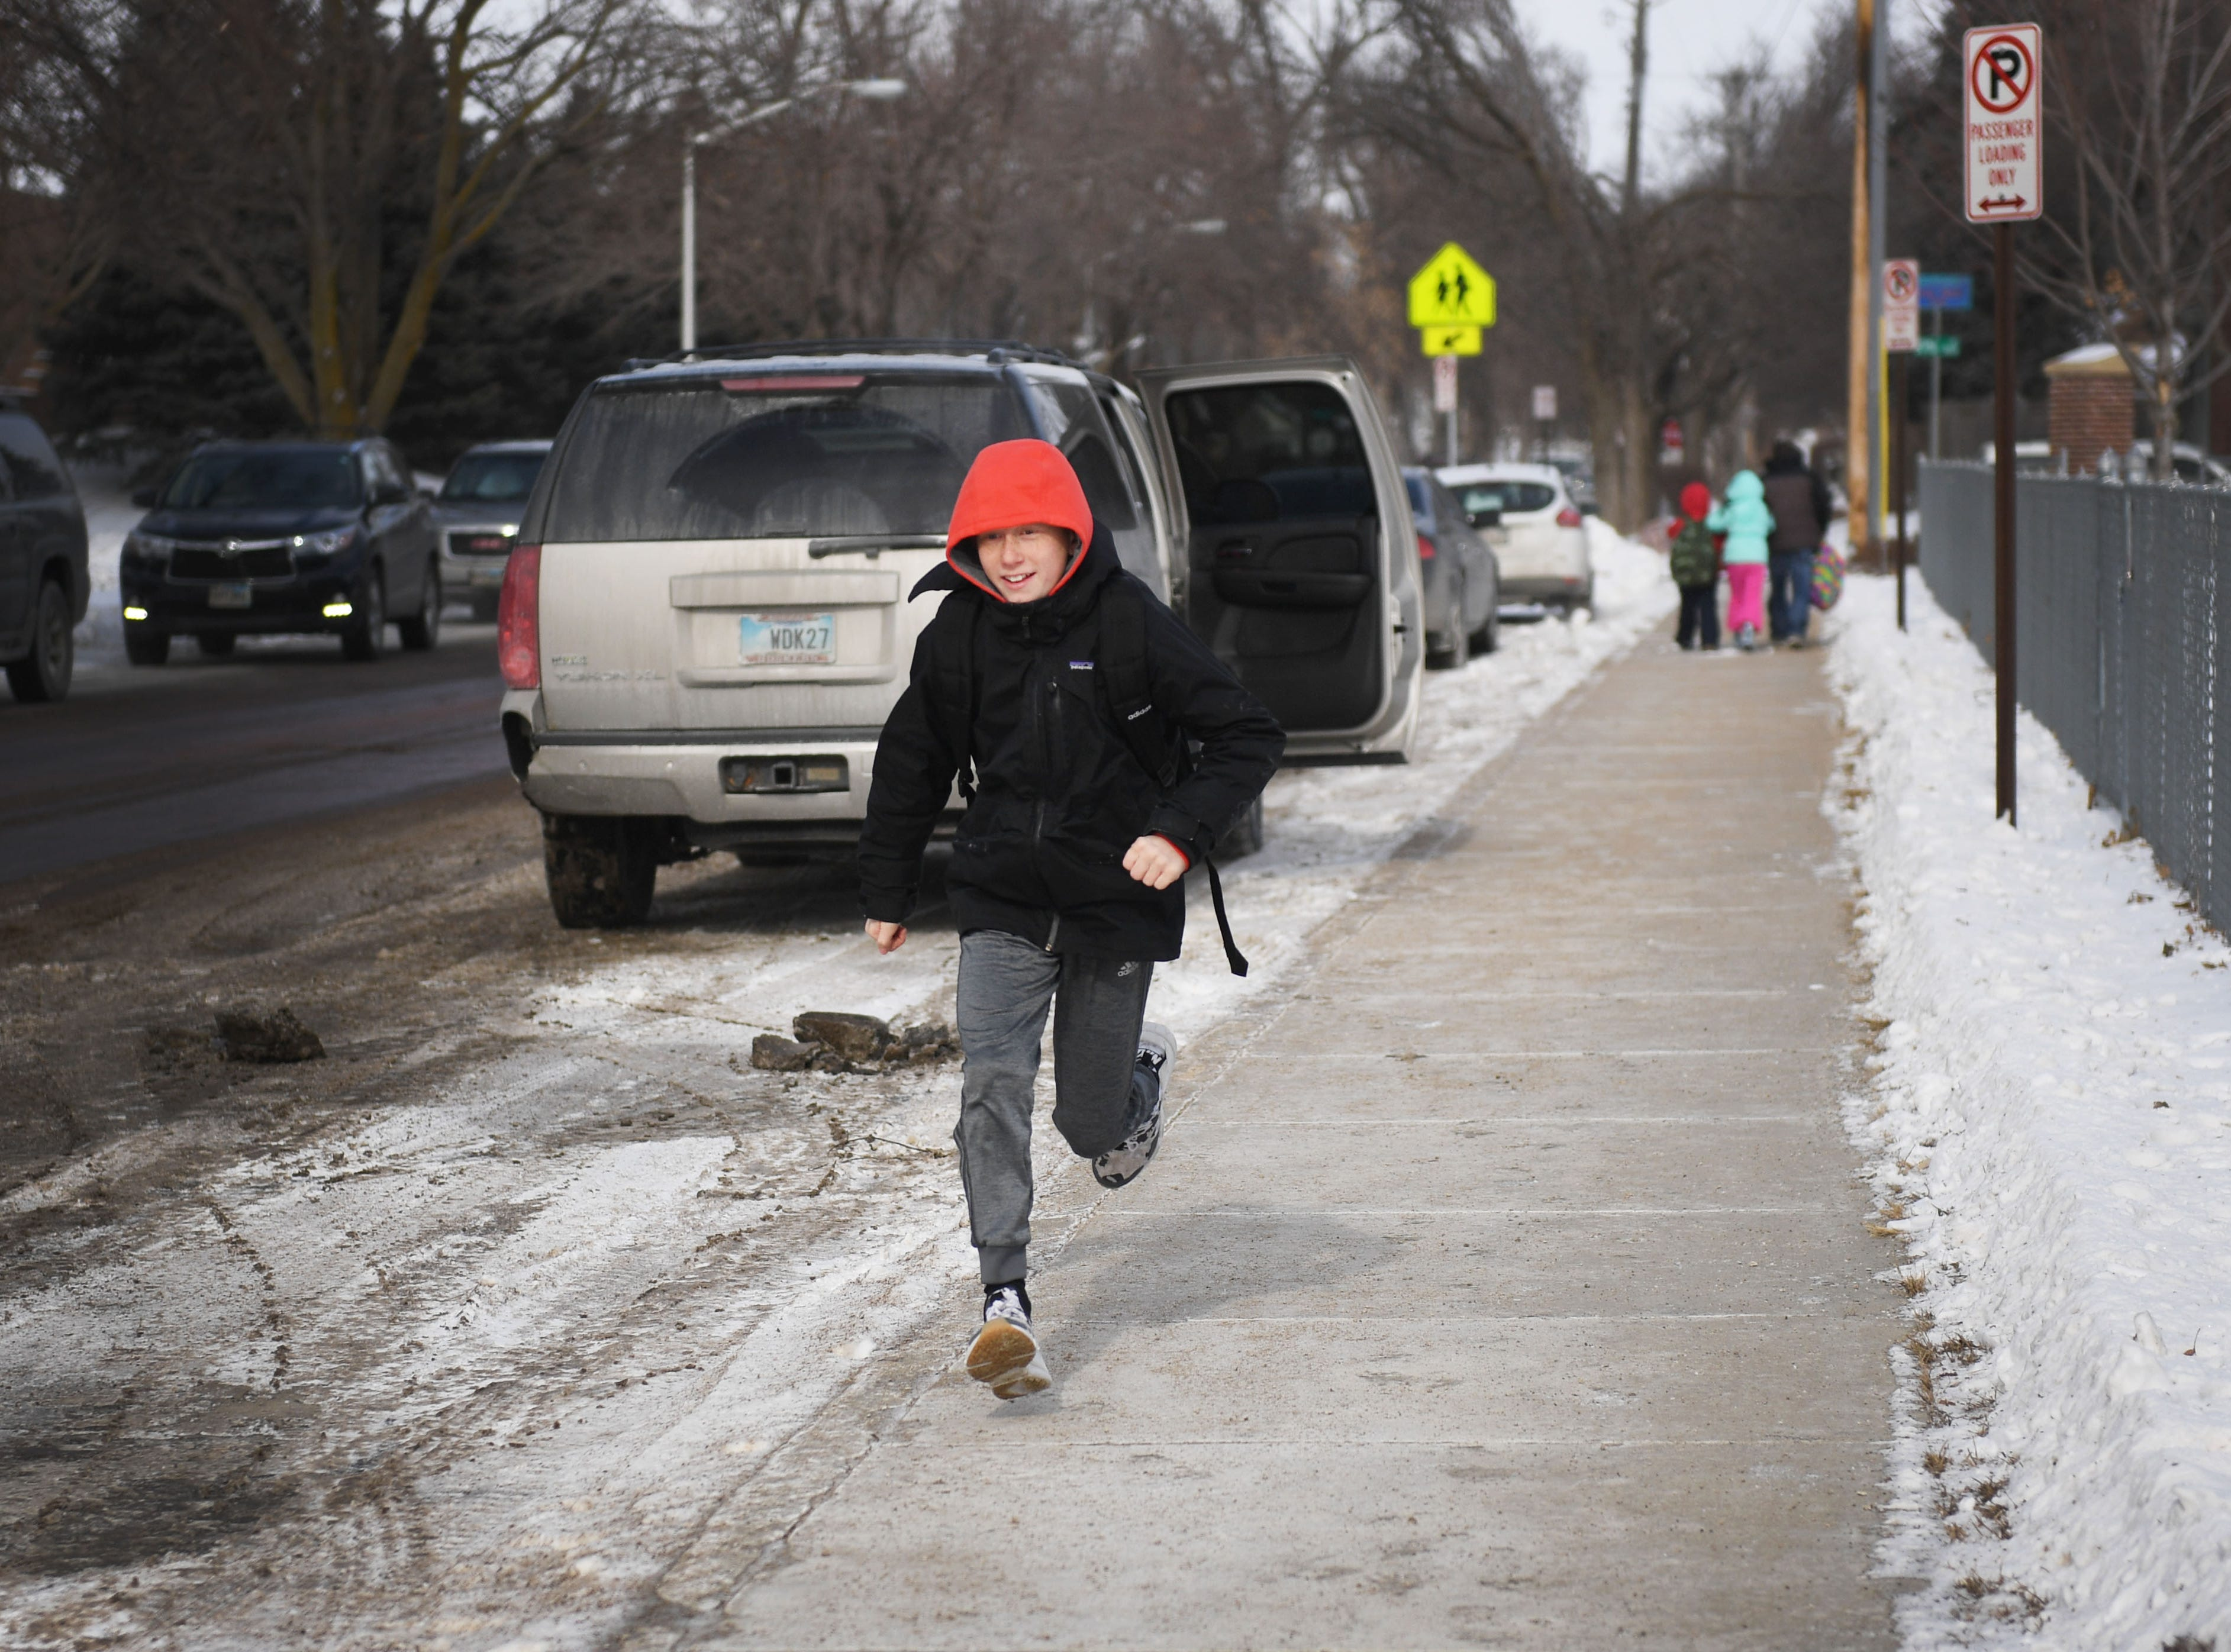 Carson Nickles runs down the sidewalk after early dismissal at Susan B. Anthony Elementary School, Tuesday, Jan. 29, in Sioux Falls. Area schools had early dismissal Tuesday because of severe weather.